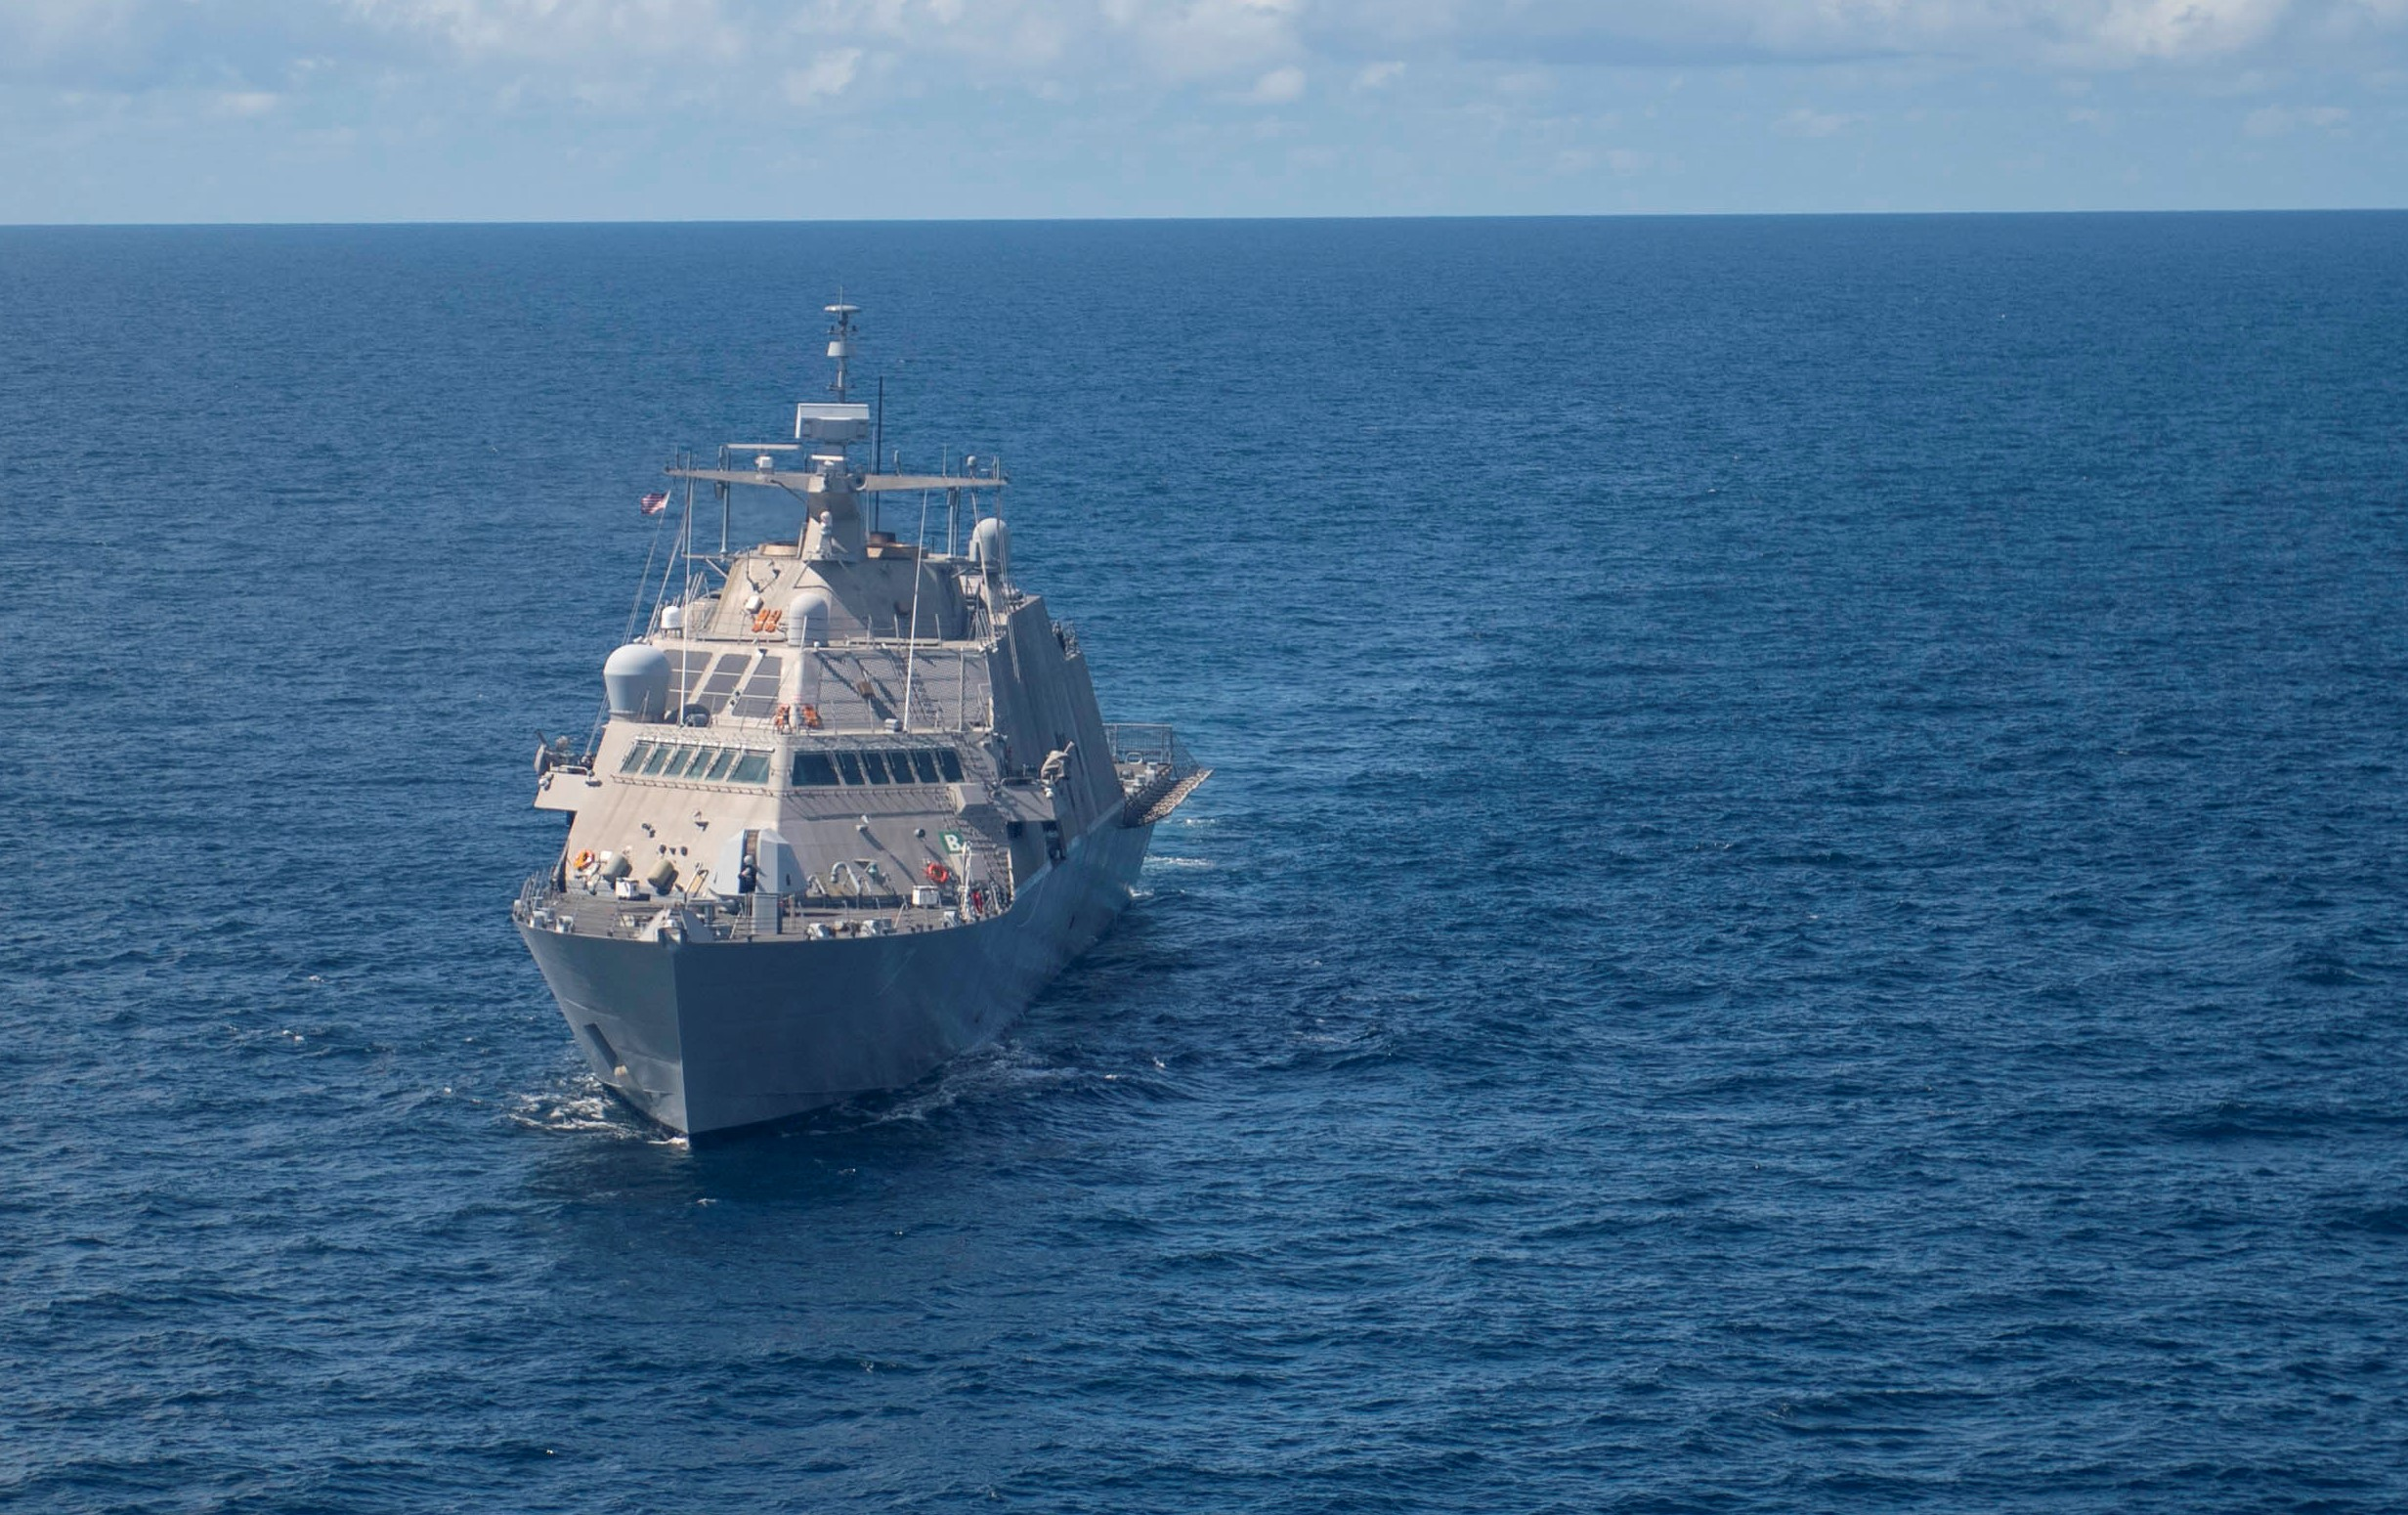 The littoral combat ship Detroit ended its deployment to South America early after issues with it combining gear, marking the latest setback for the Freedom variant's complicated propulsion system. (MC2 Devin Bowser/U.S. Navy)